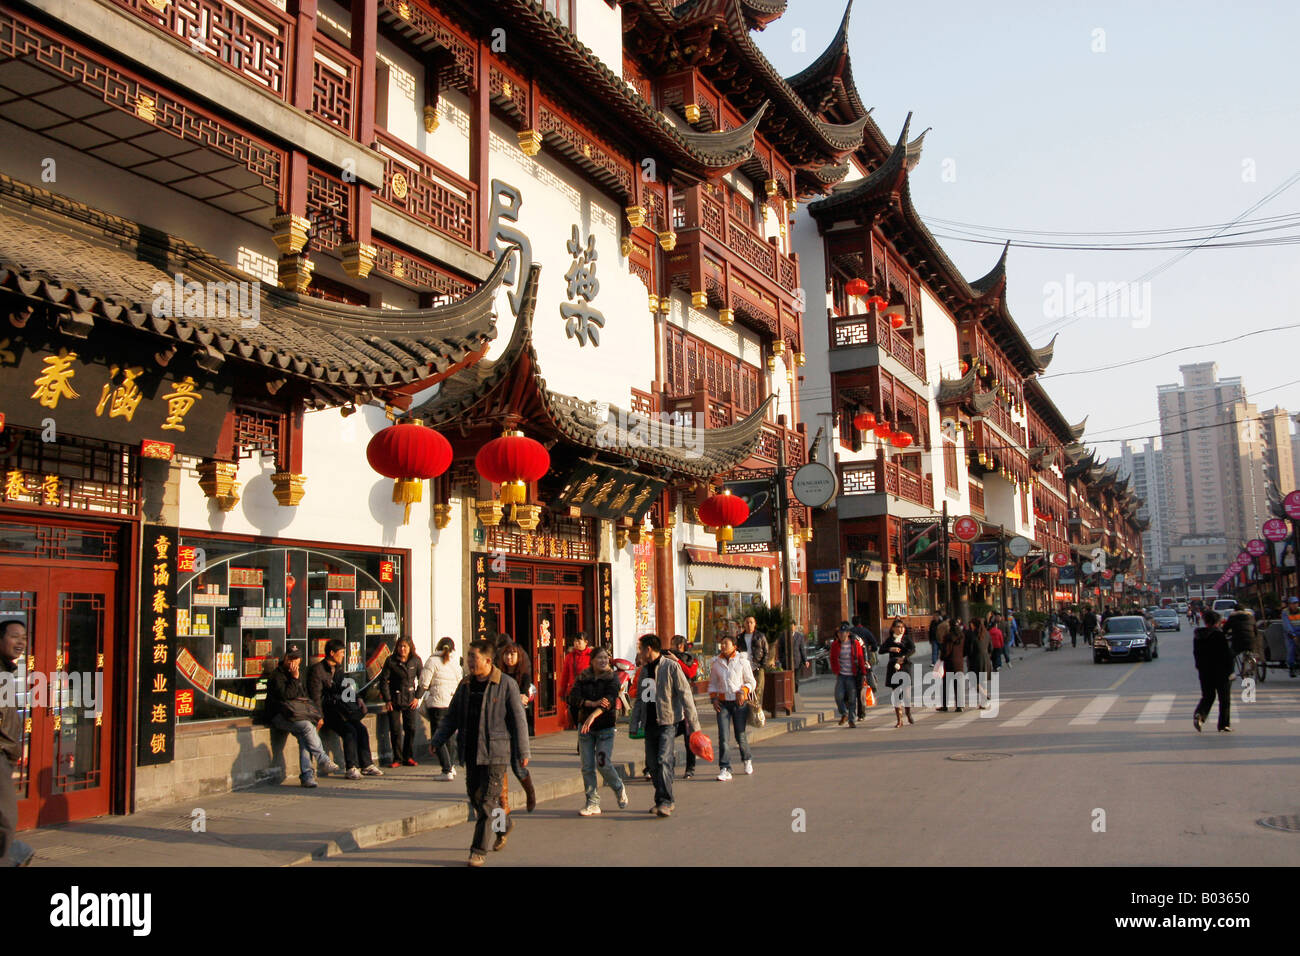 Busy tourist street in the Old town ,Shanghai,China - Stock Image